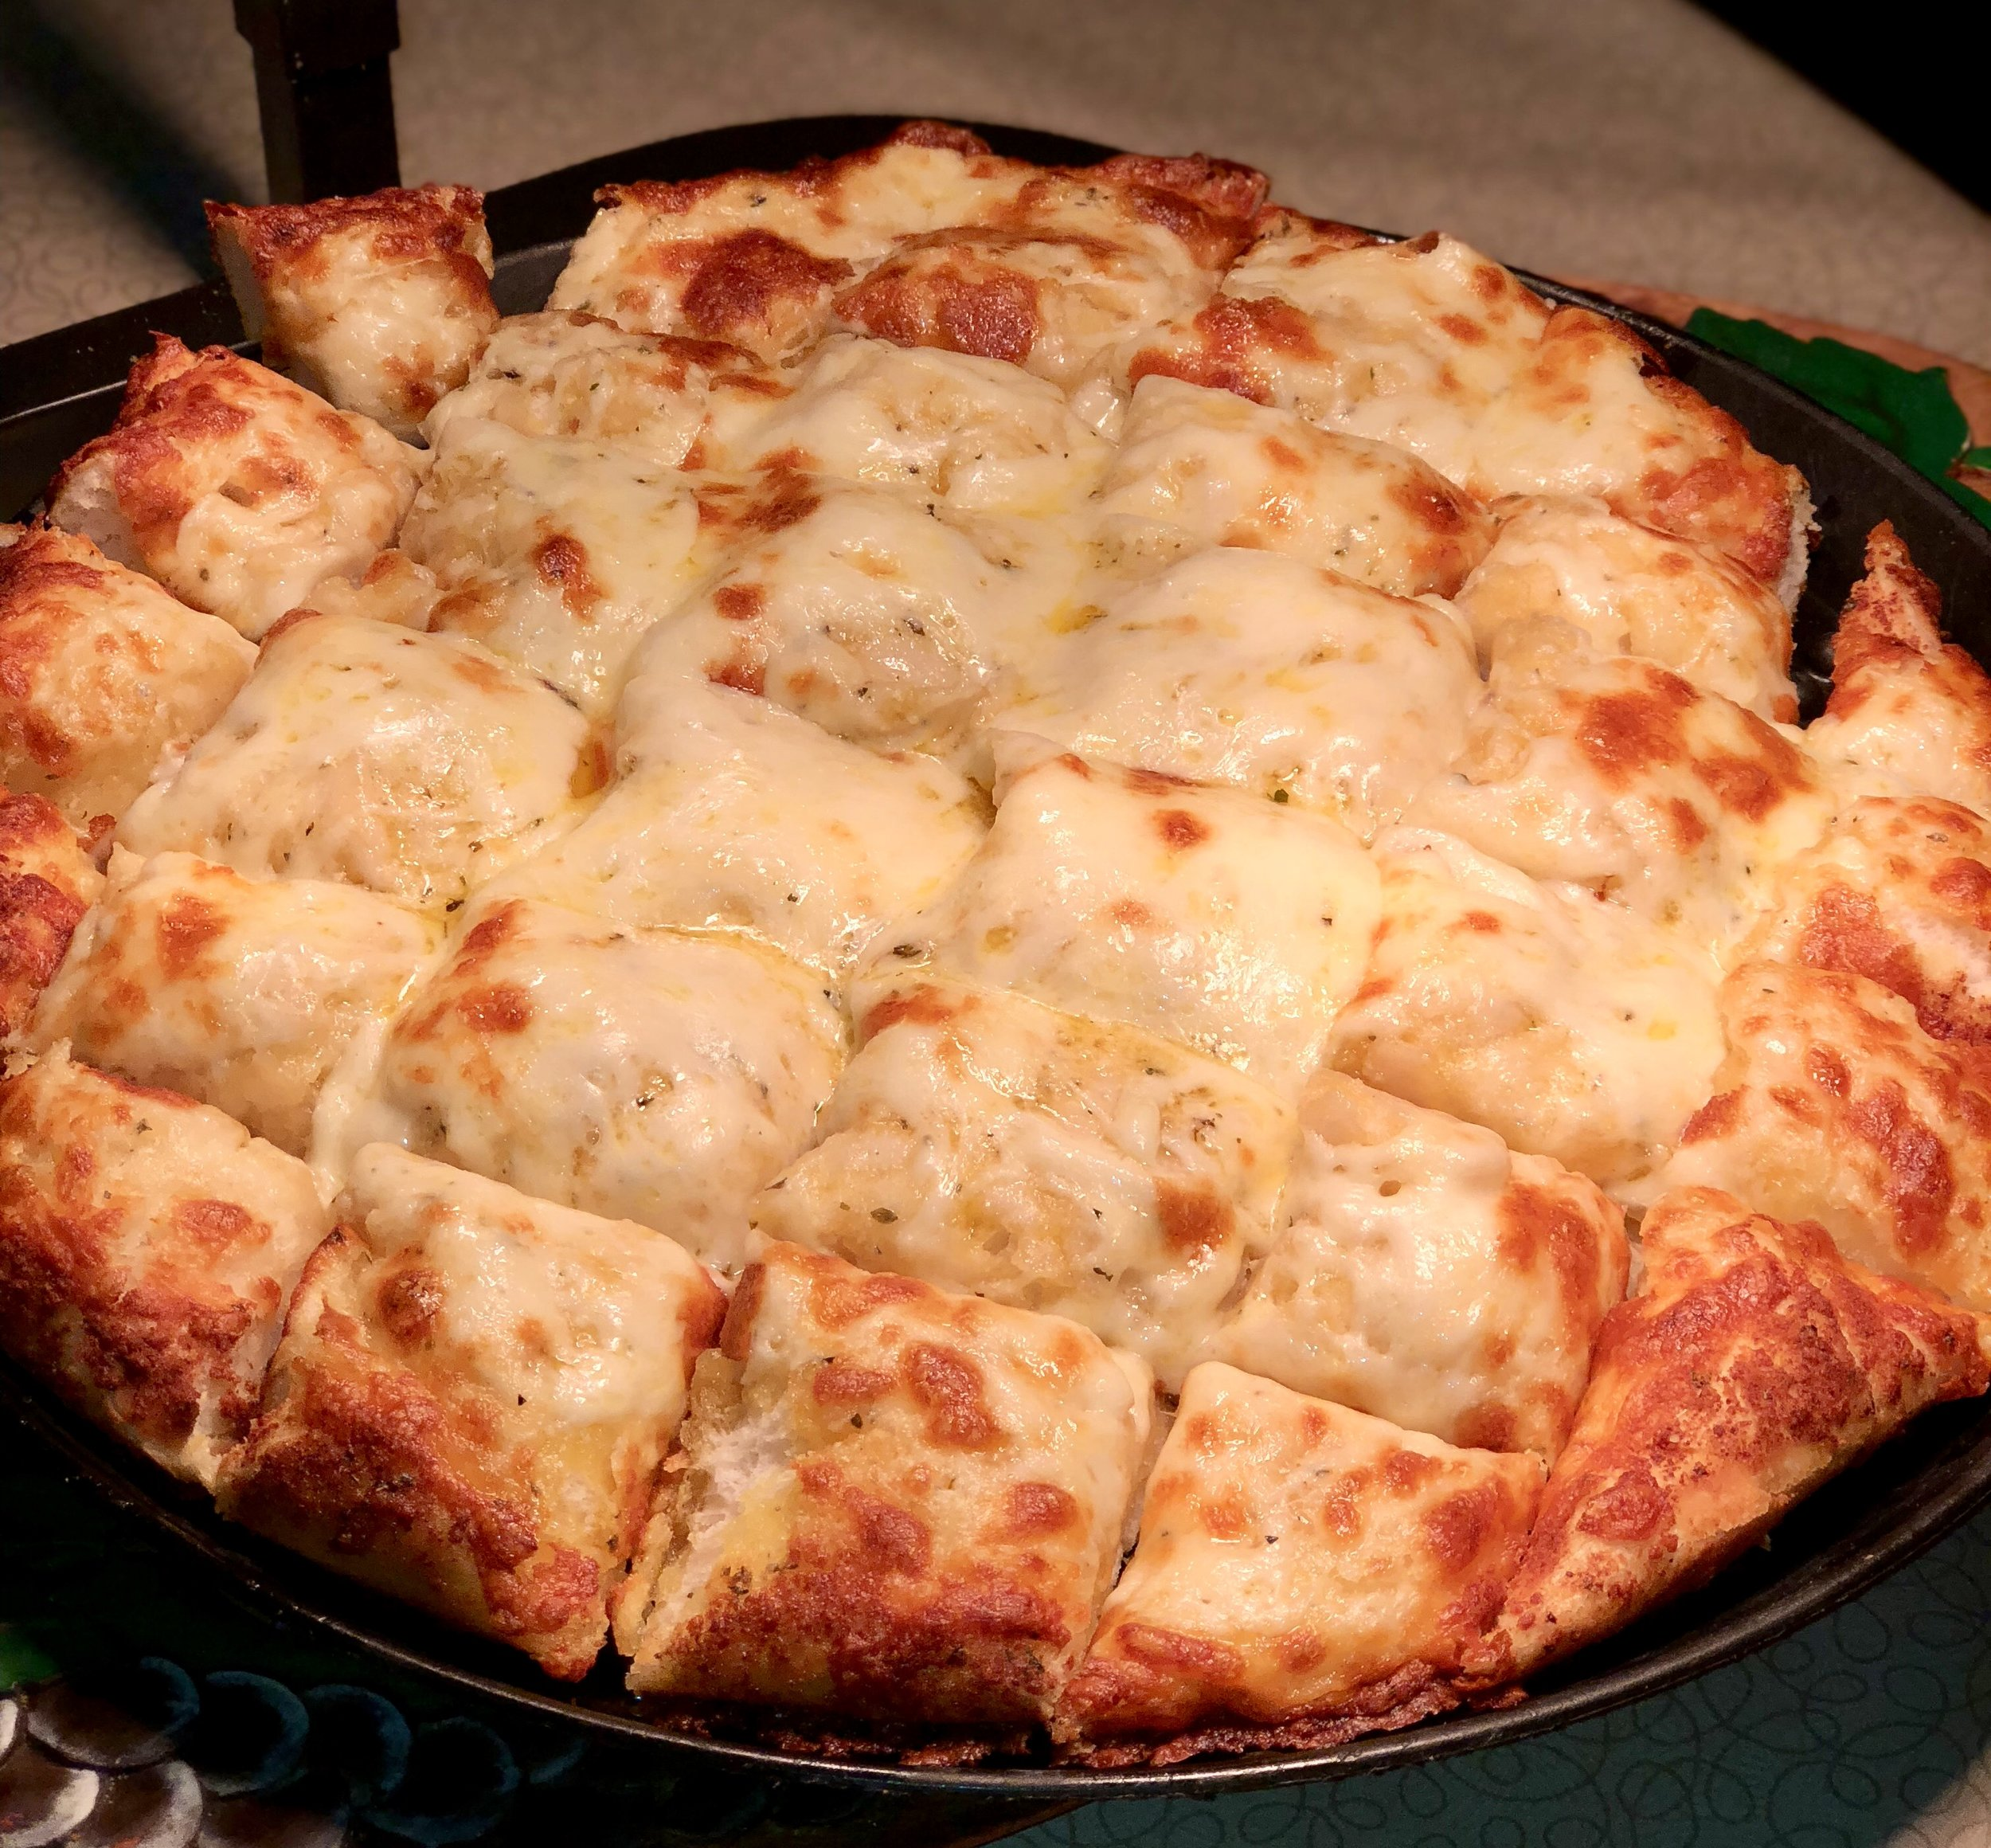 CHEESY BREAD.